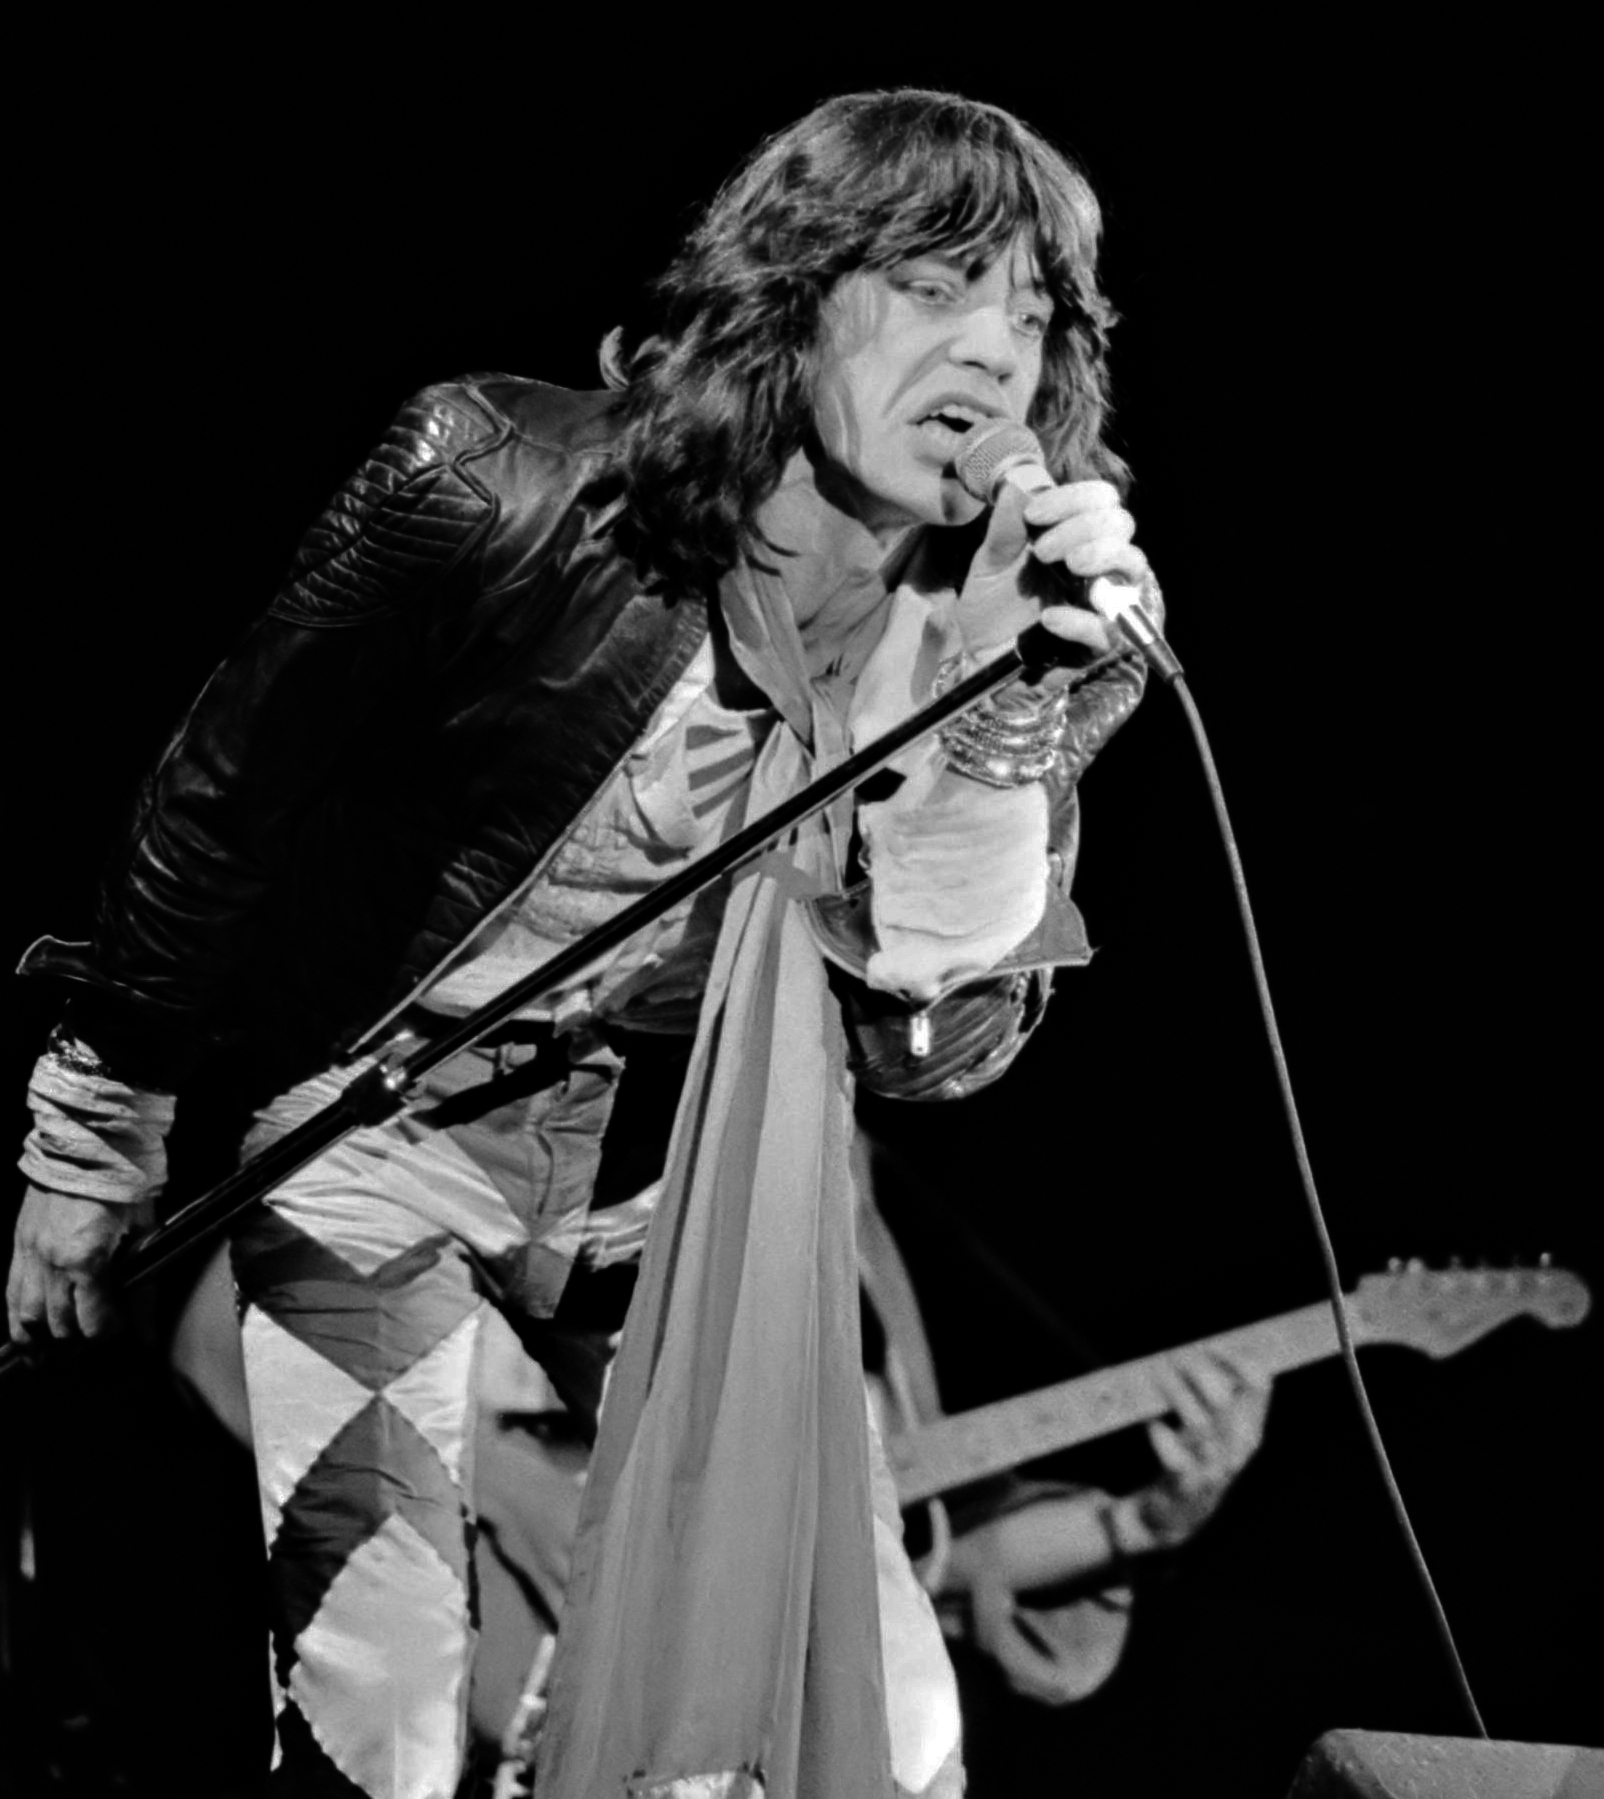 Mick jagger wikipedia jagger in zuiderpark te den haag netherlands 1976 nvjuhfo Image collections